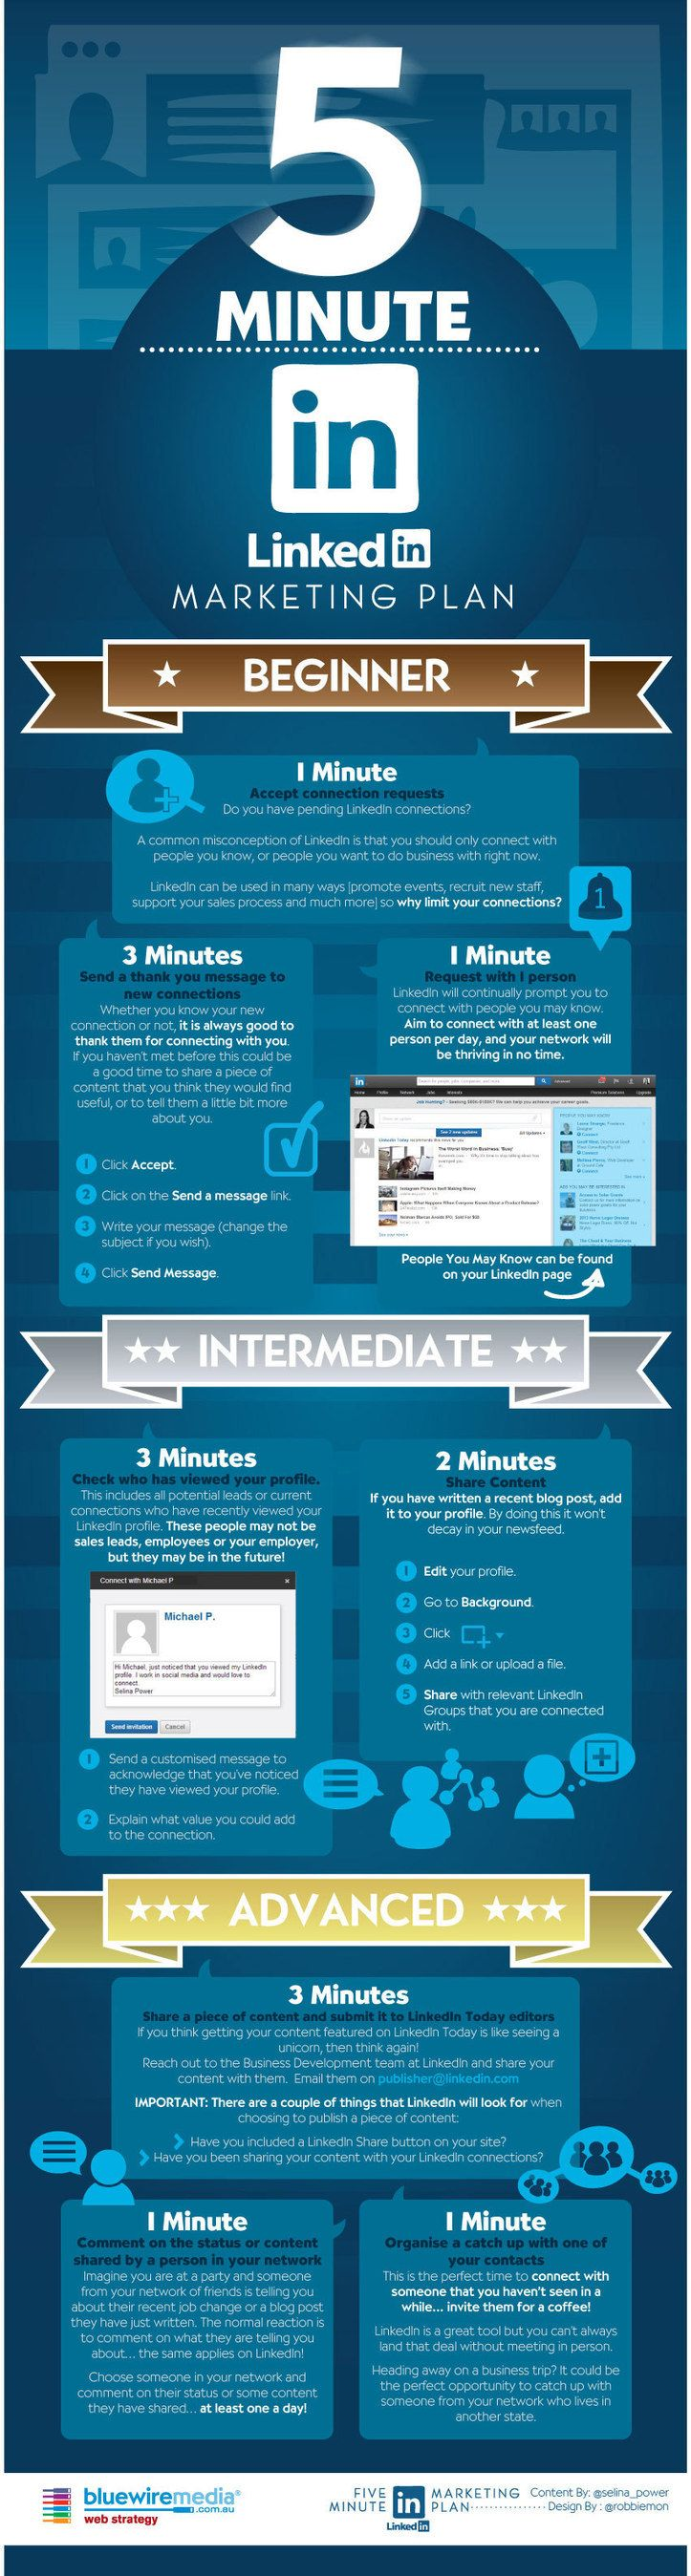 LinkedIn Marketing Strategy Infographic - Bluewire Media | #TheMarketingAutomationAlert